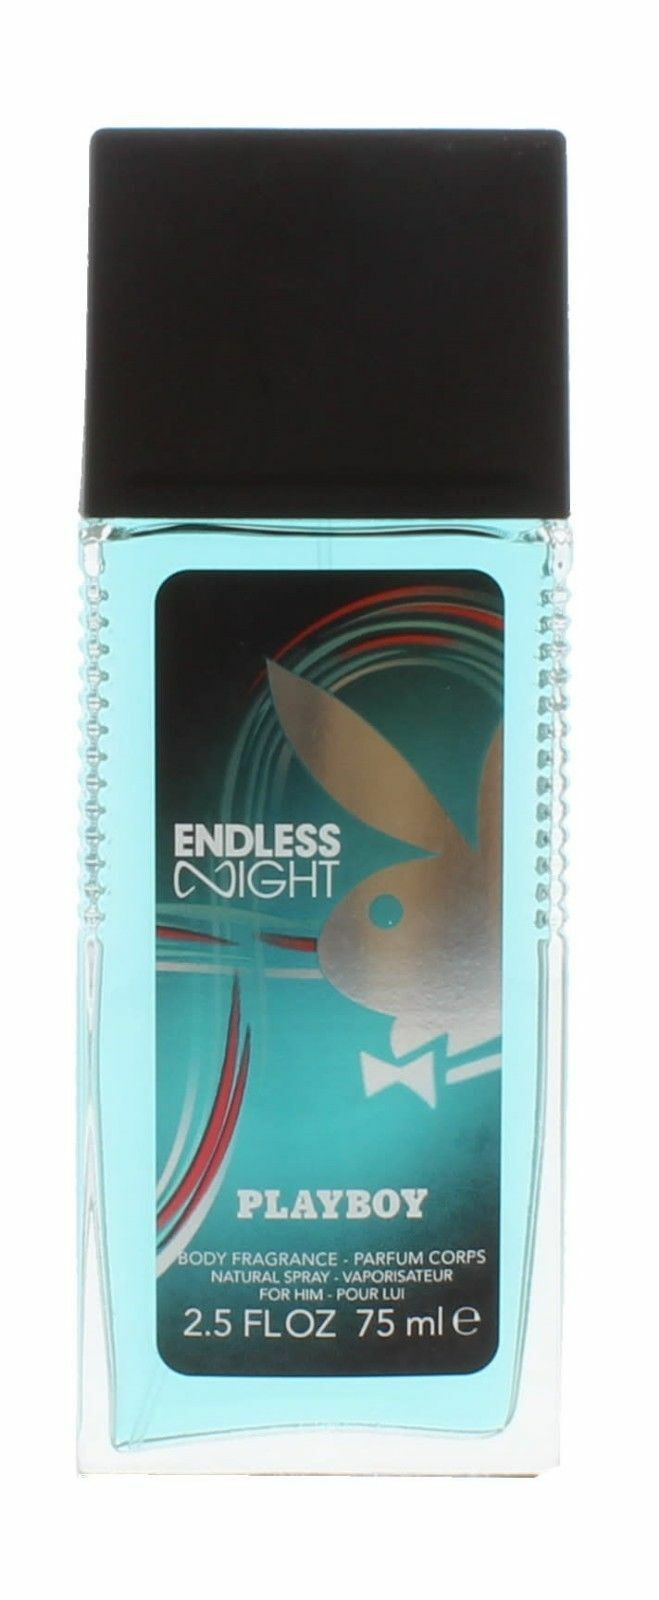 Playboy Endless Night Body Fragrance Natural Spray For Him - 75ml